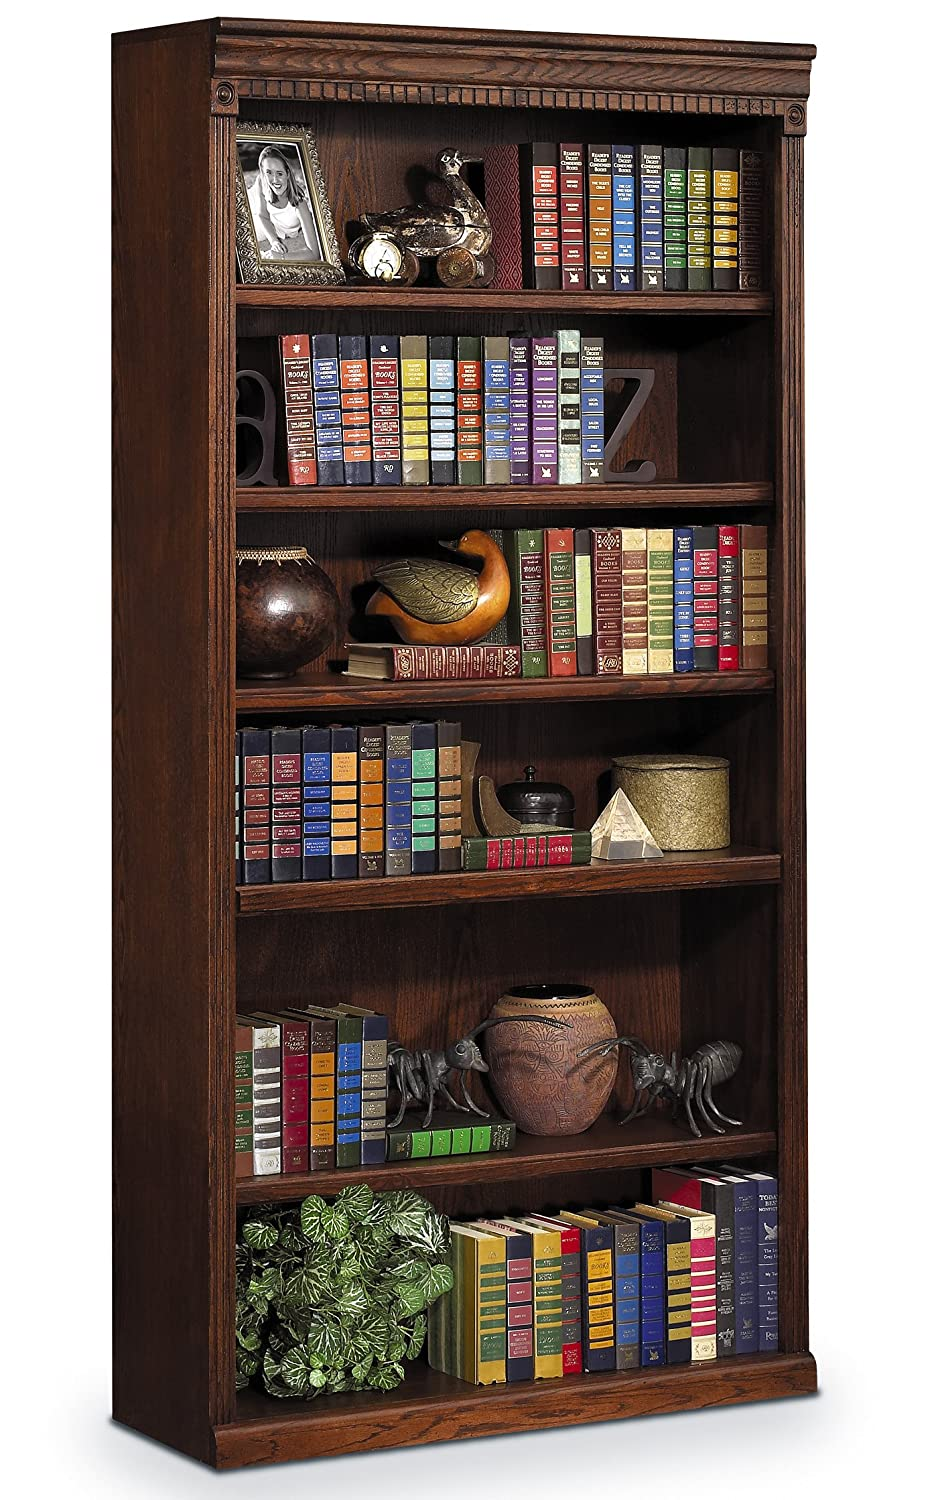 Kathy Ireland Home By Martin Huntington Oxford 72 Open Bookcase - Burnish Finish - Fully Assembled